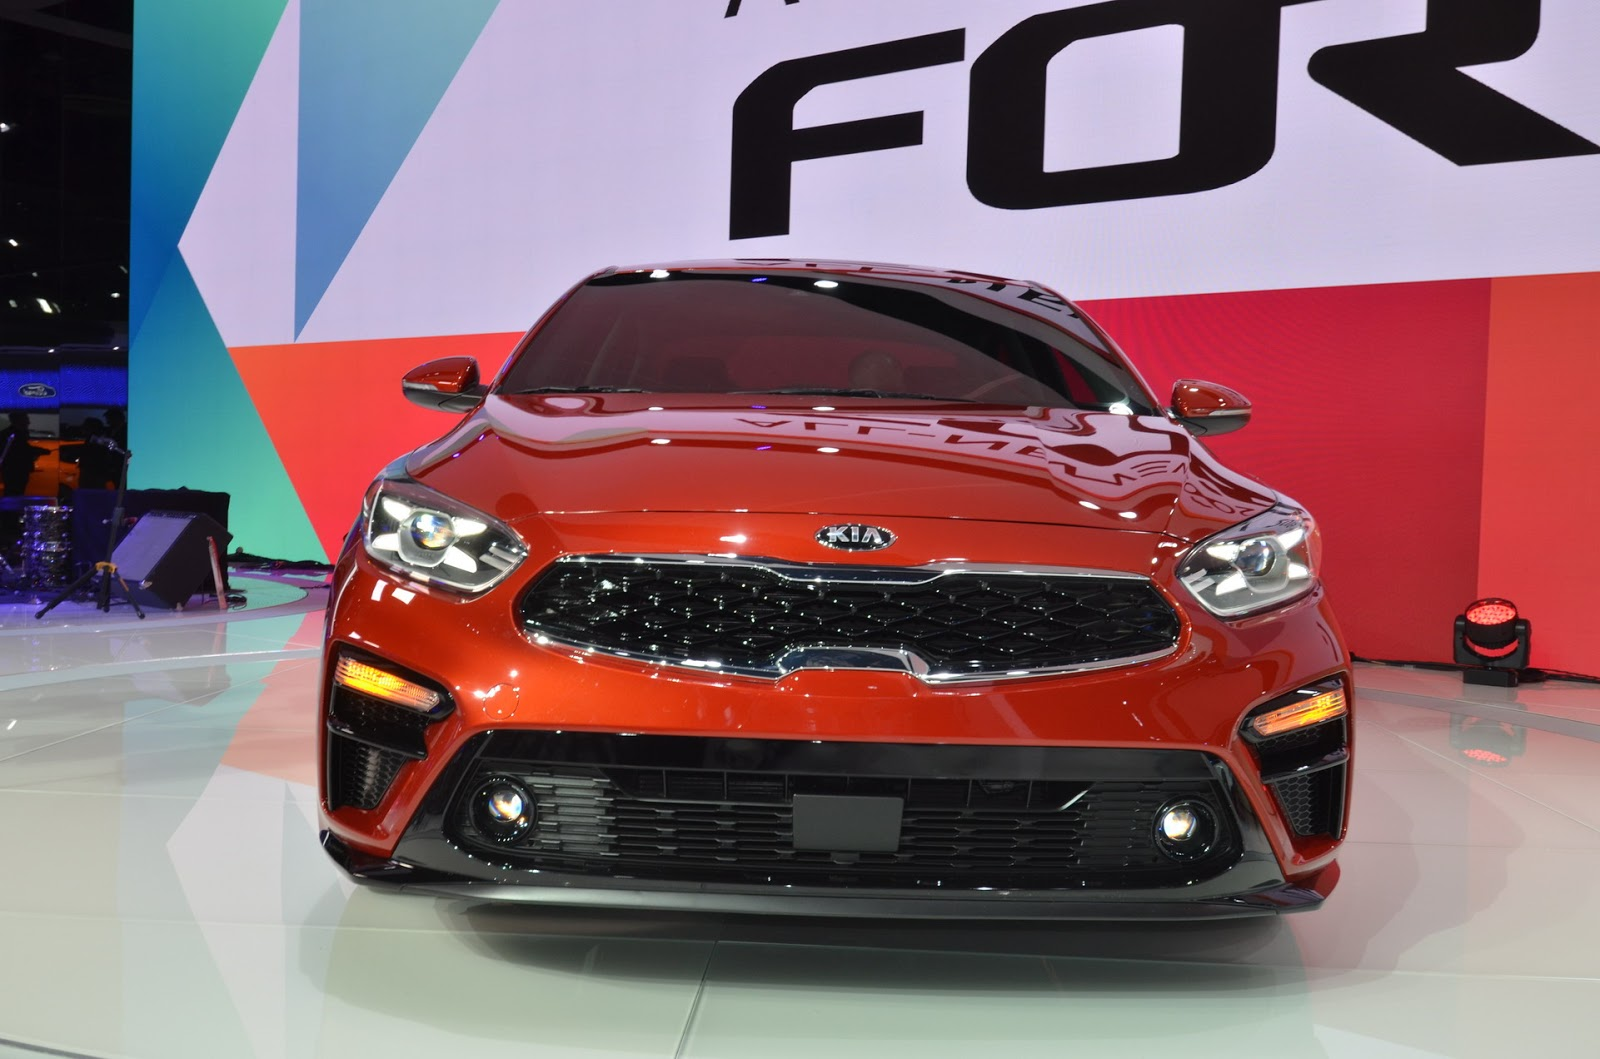 2019 Kia Forte Arrives With Stinger Design Cues And New ...